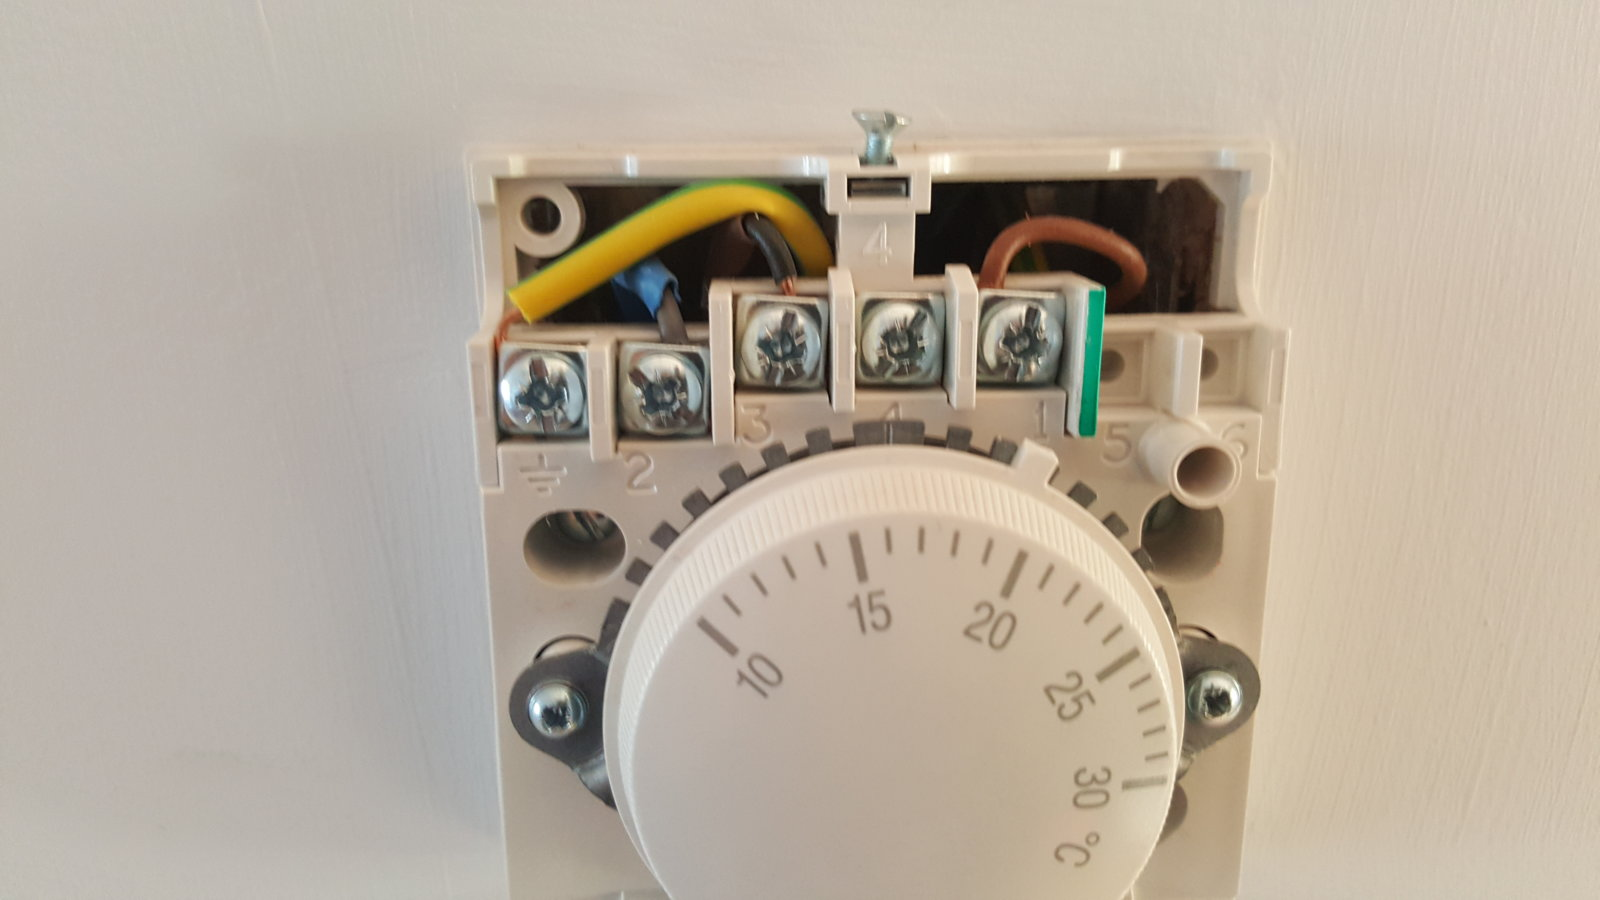 Wiring Diagram For Honeywell T40 Thermostat : Replacing honeywell t with tado diynot forums